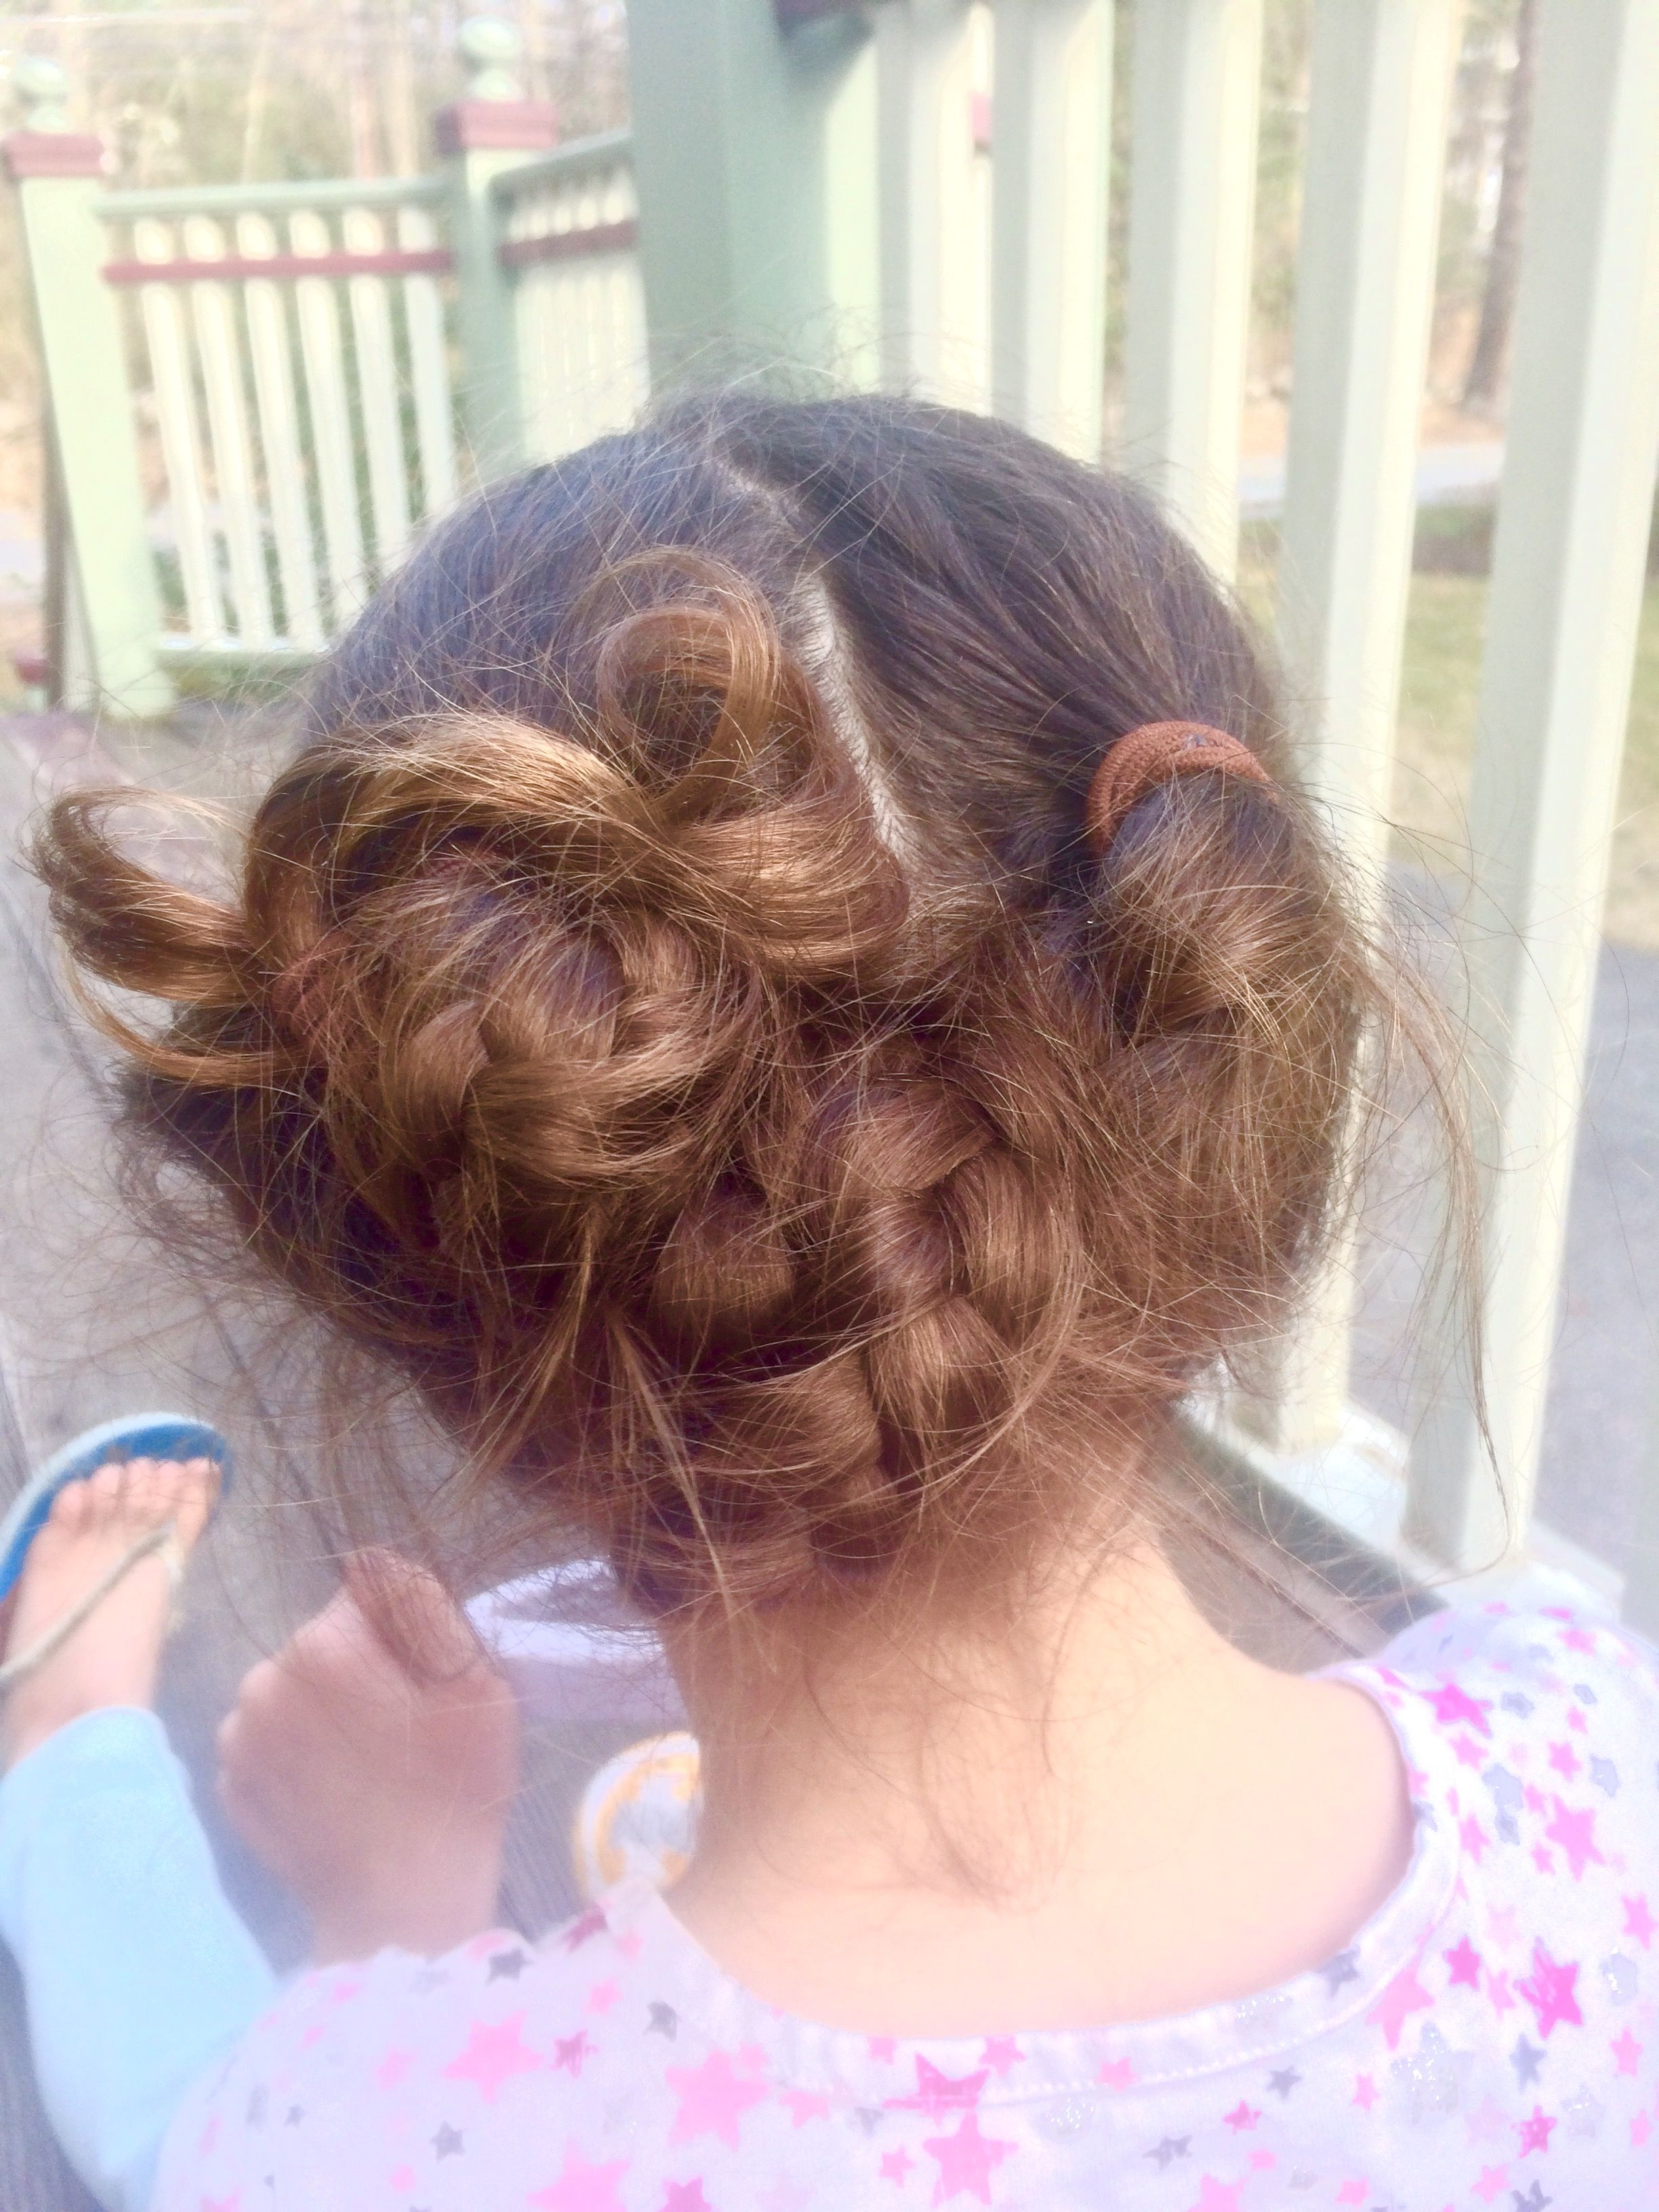 I love this hairstyle that I did on my sister! ❤️❤️